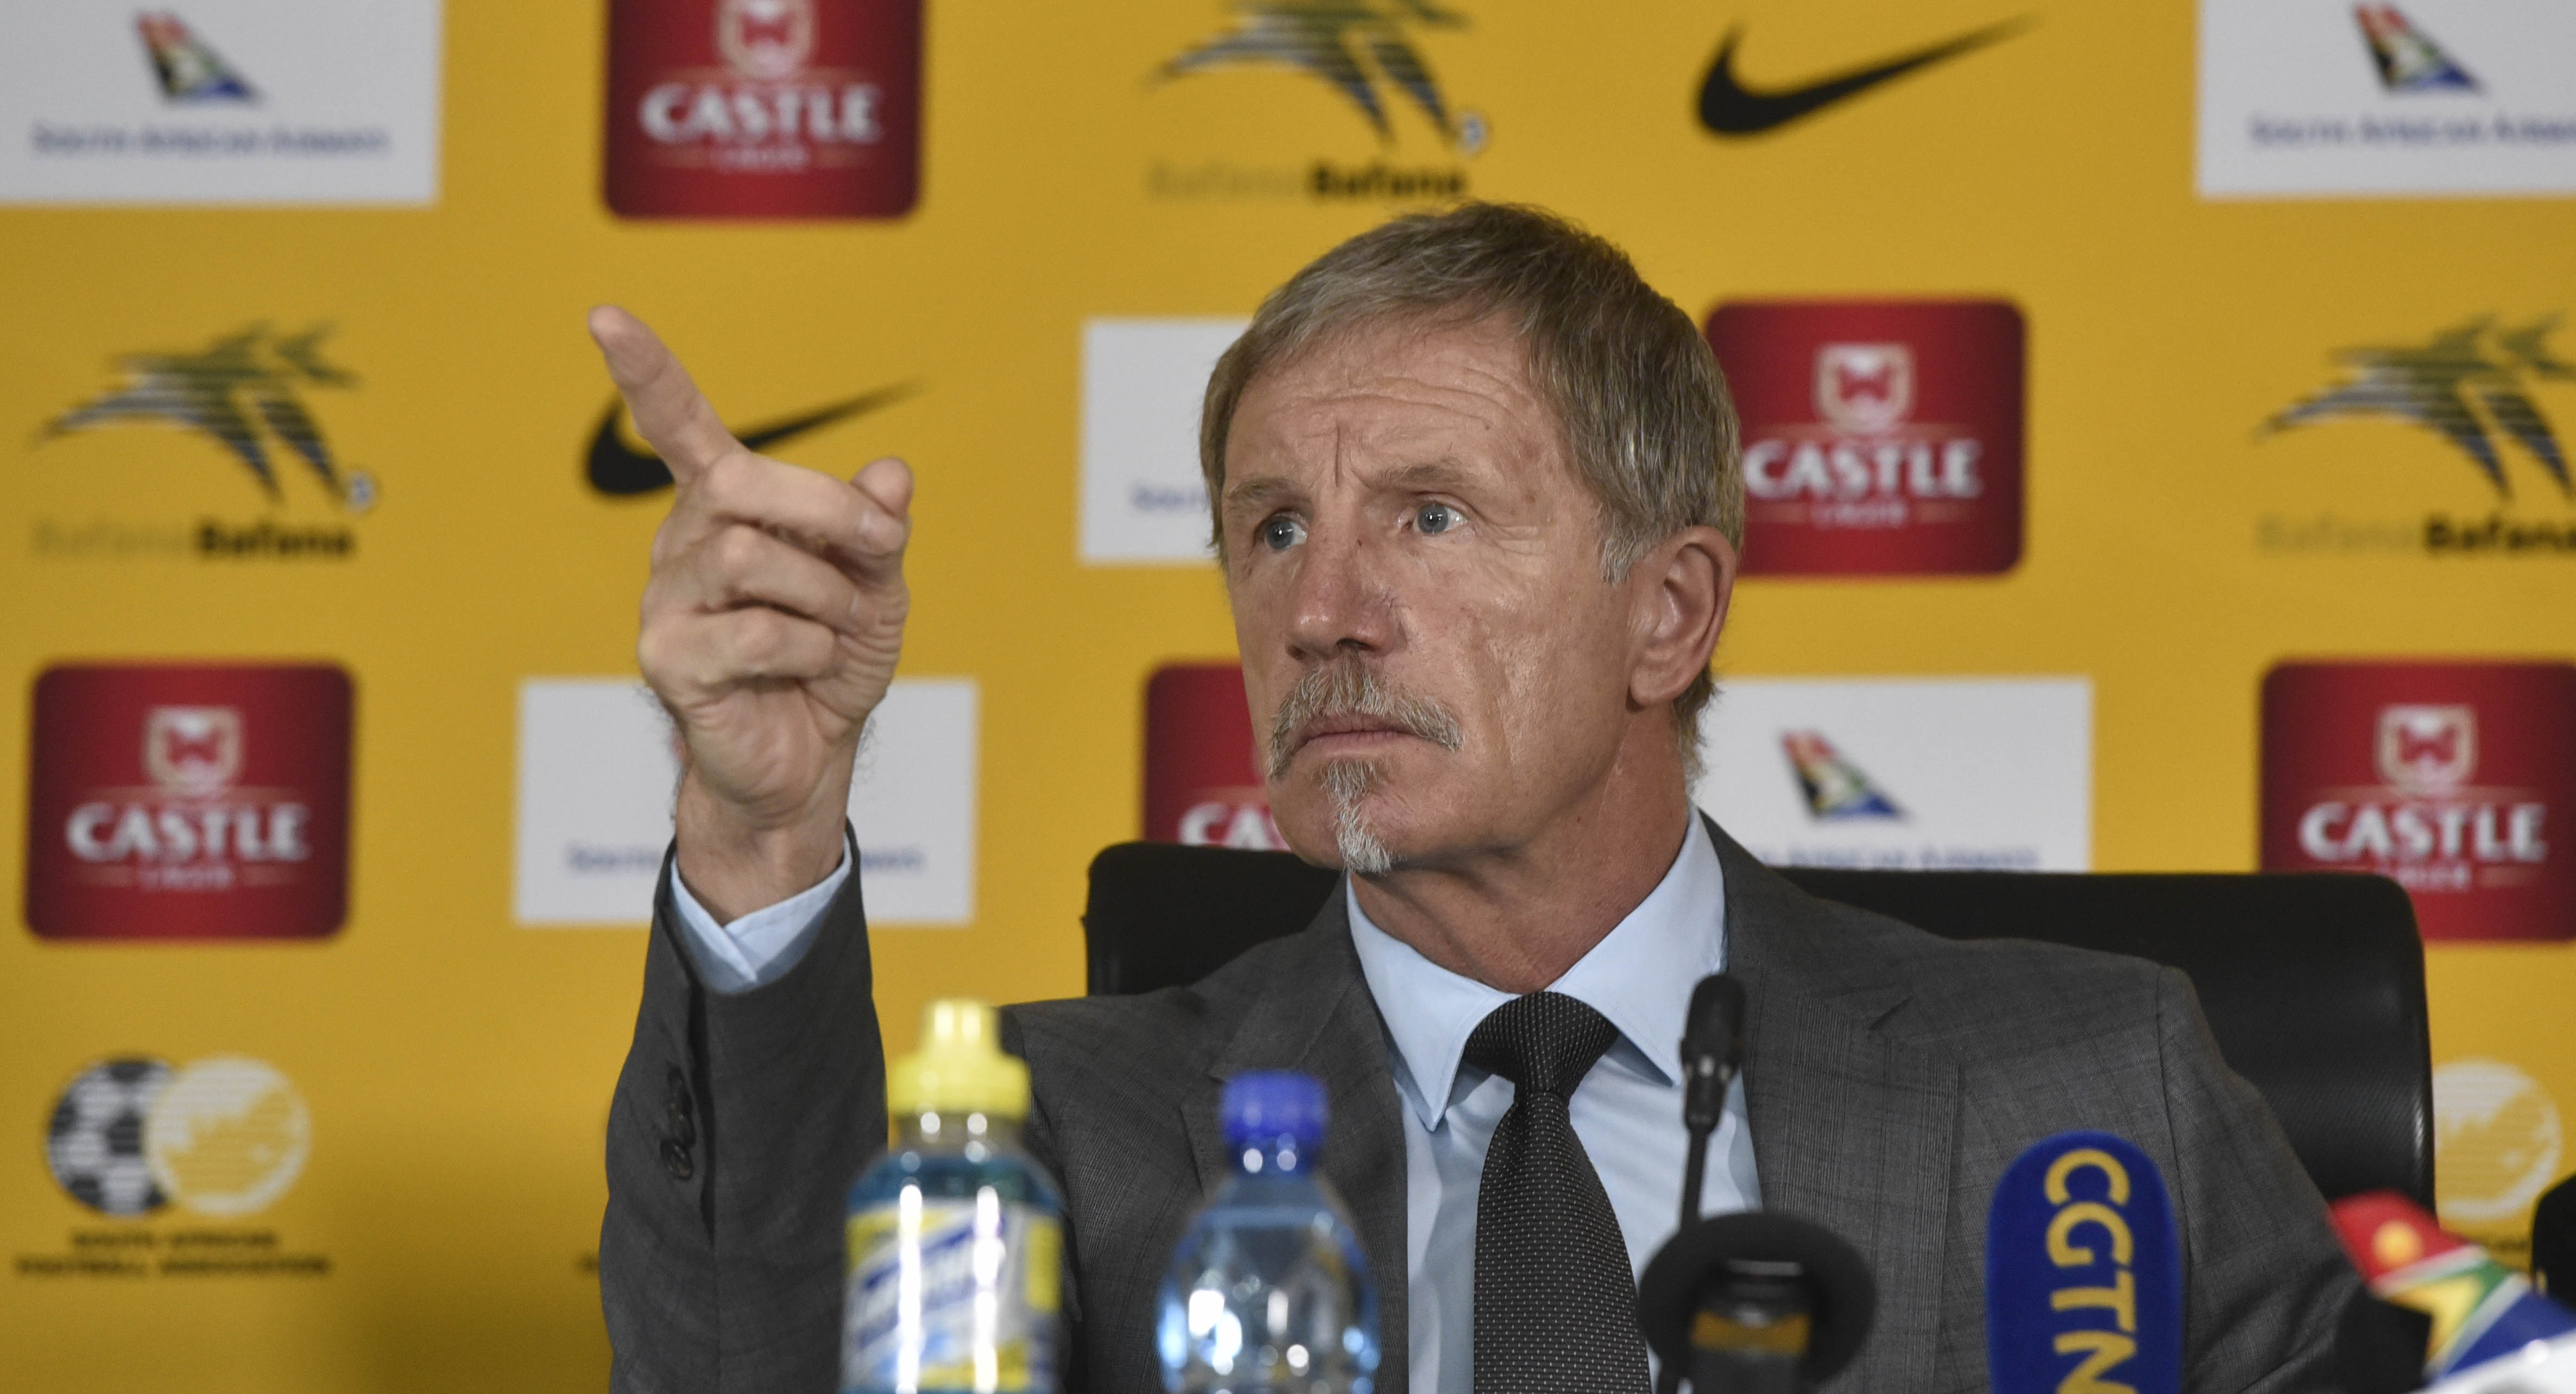 SA coach Baxter reveals details of Mourinho & Wenger texts after Egypt win